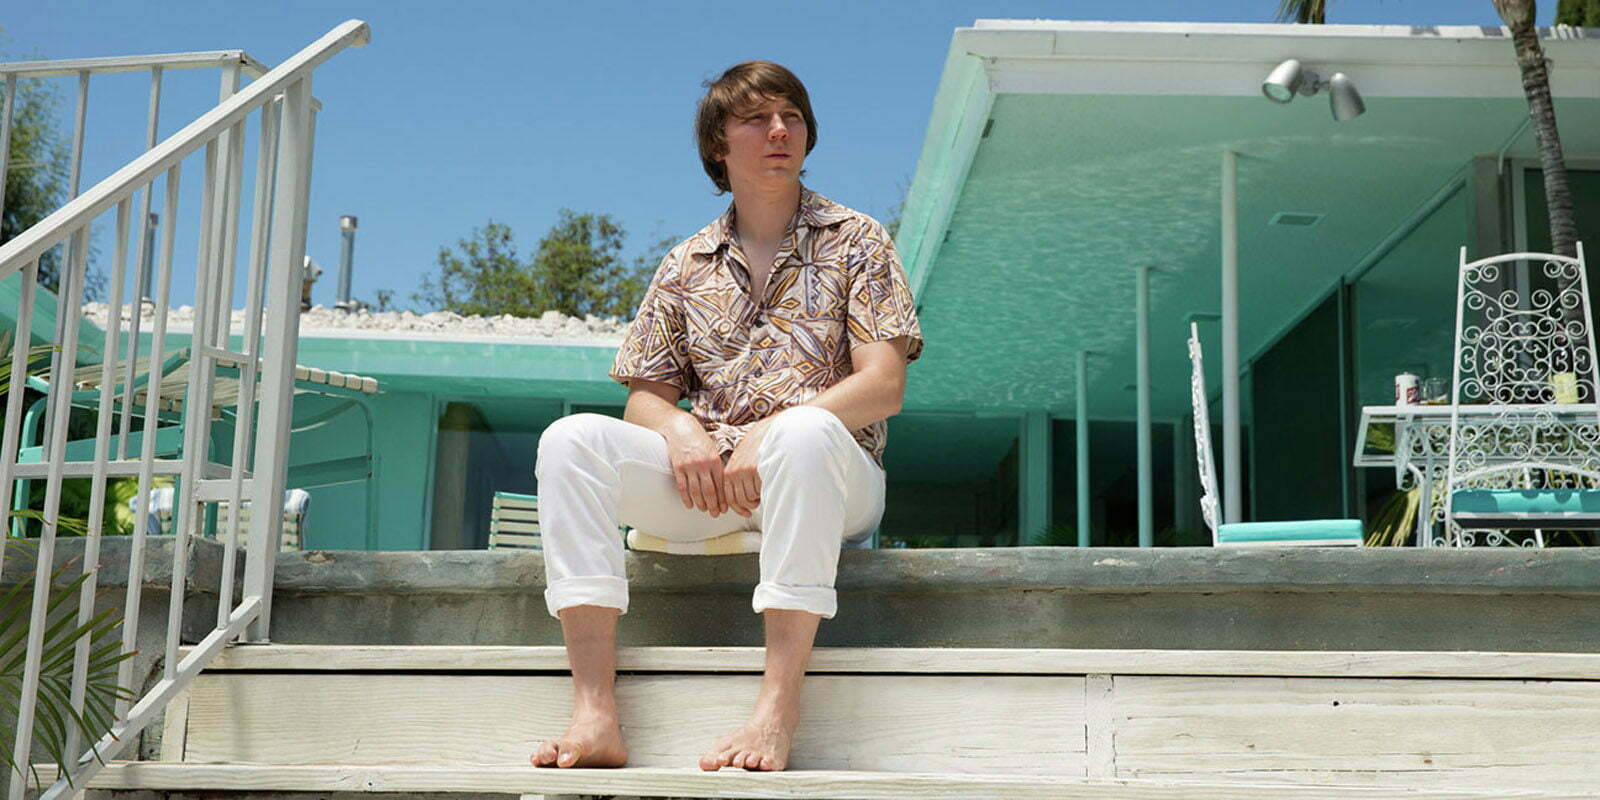 Mejores biopics musicales - Love and mercy